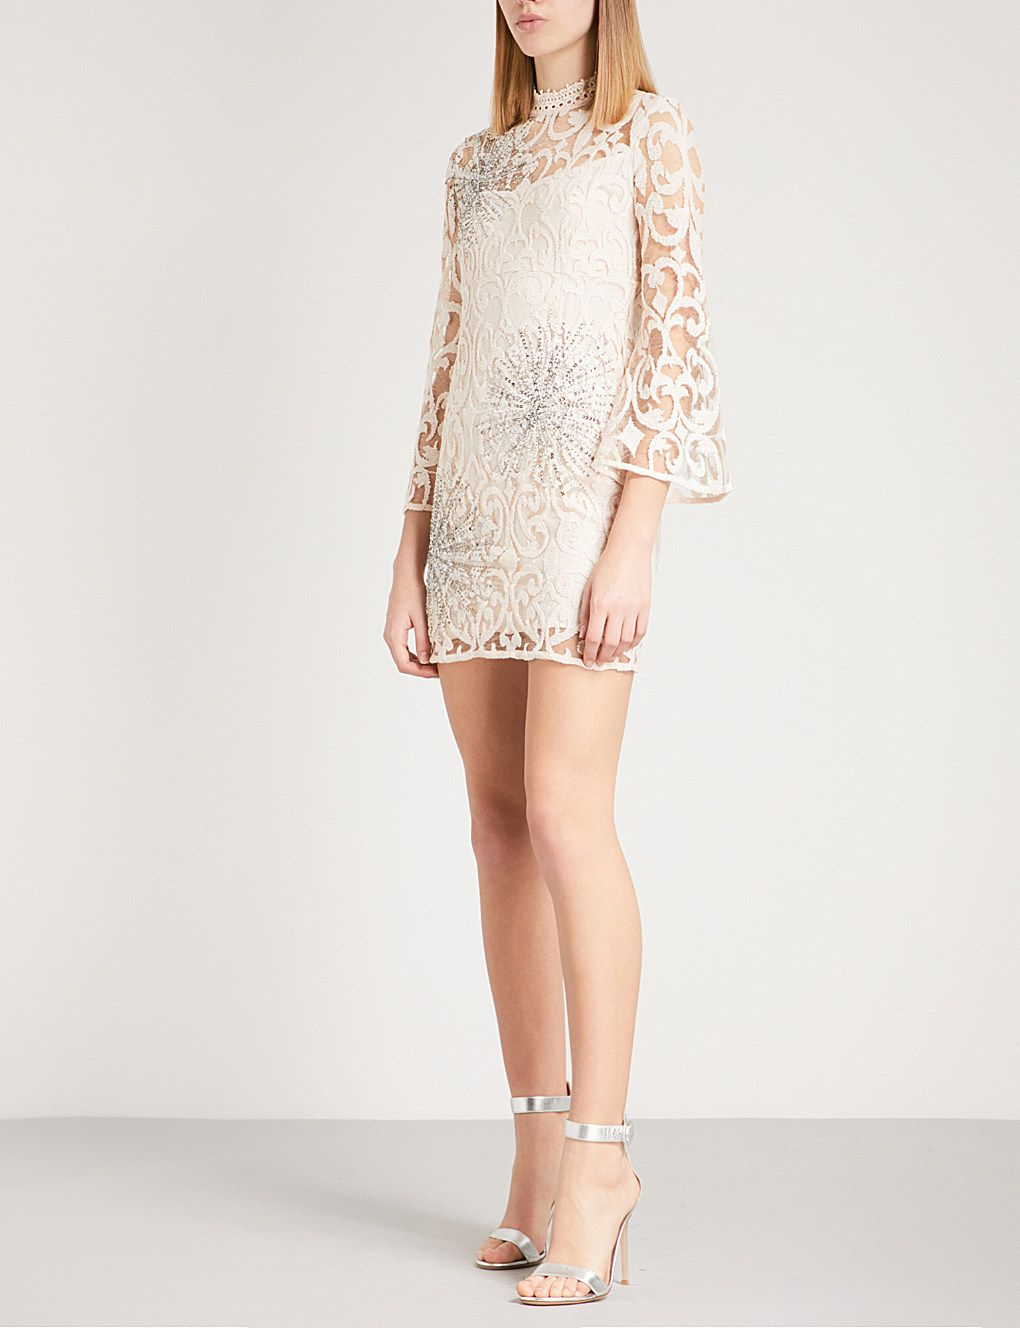 8af2ebd84 FREE PEOPLE North Star embellished lace mini dress